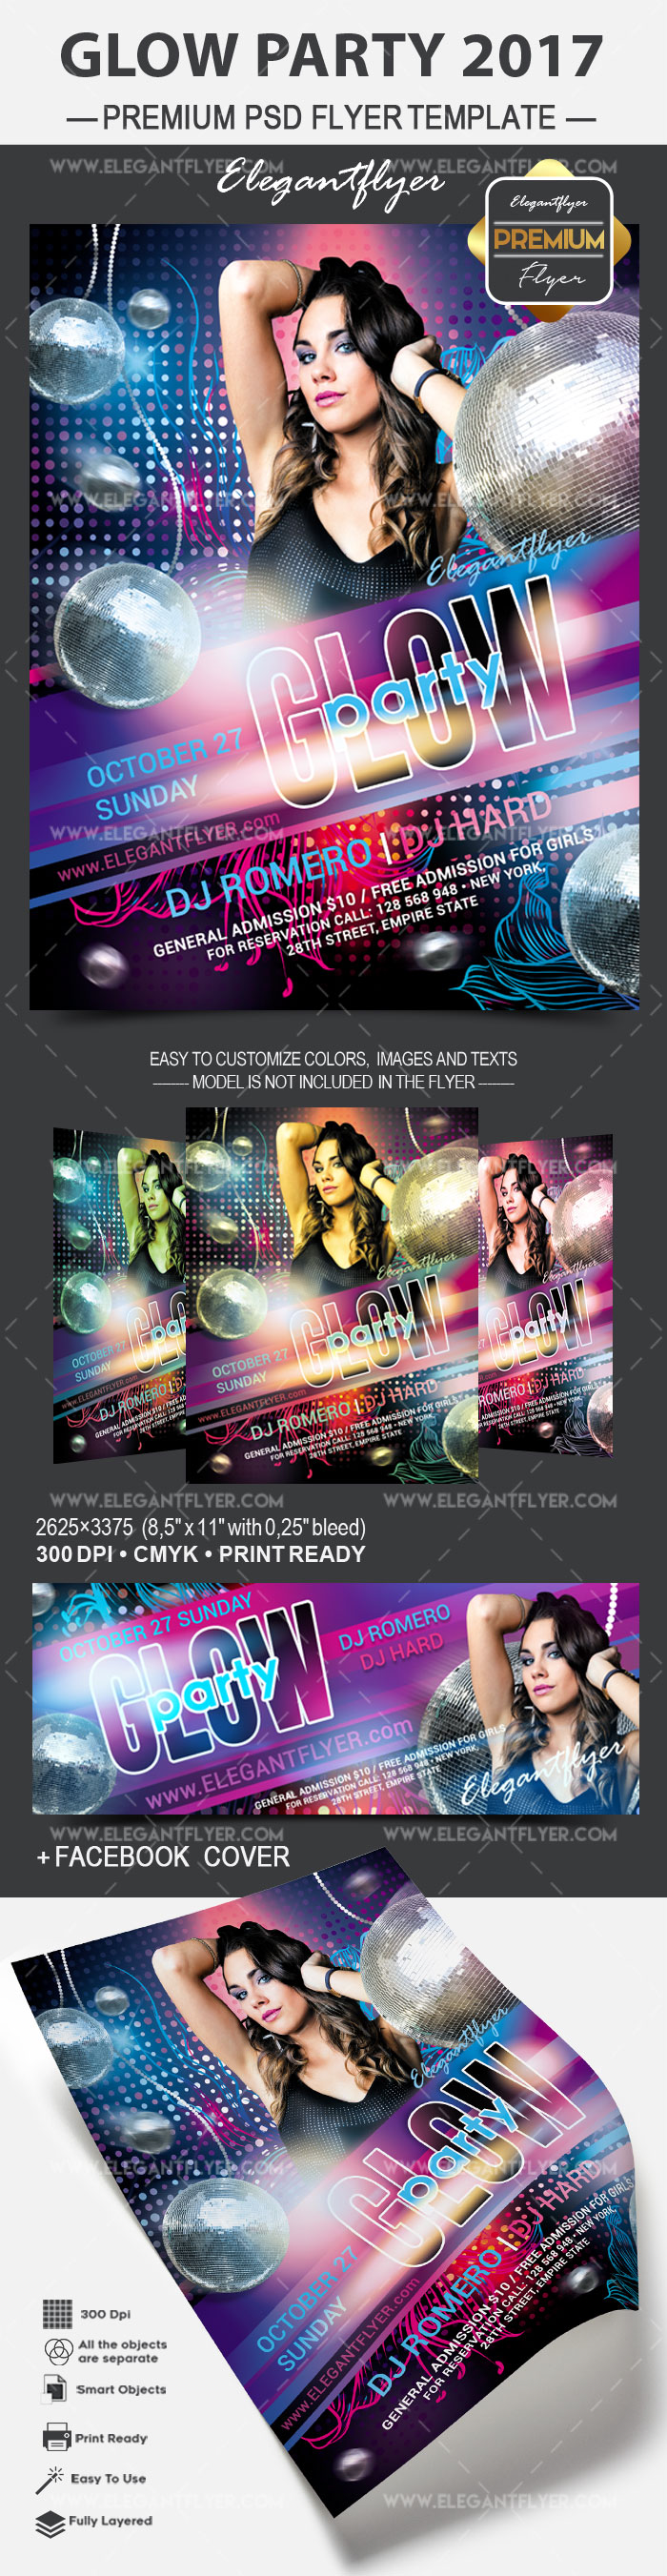 Glow party 2017 – Flyer PSD Template